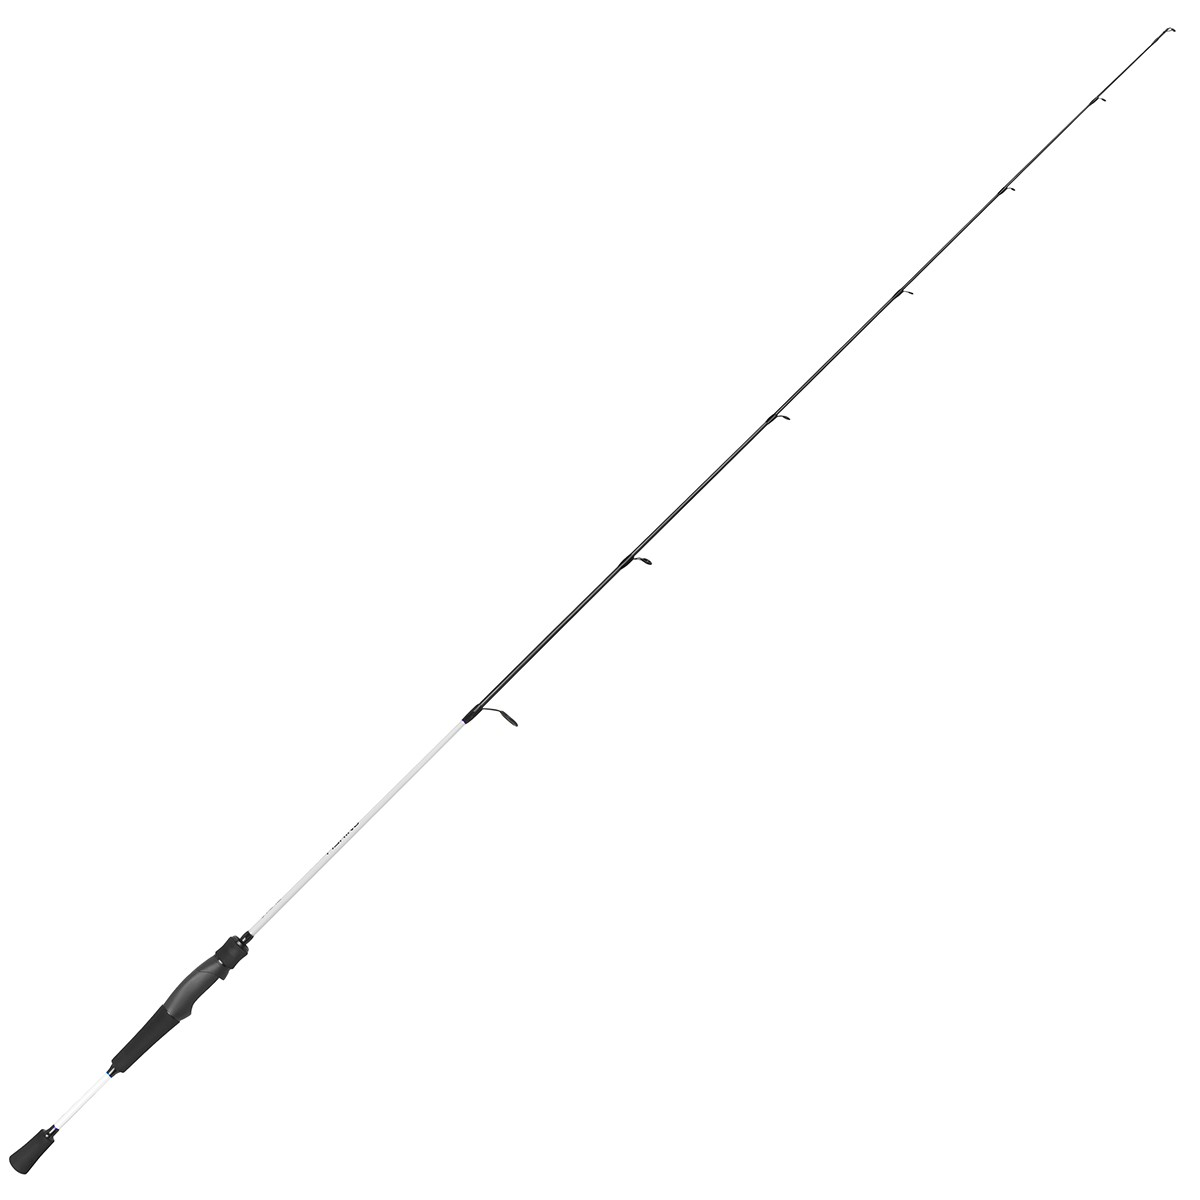 Vara Saint Plus Pro Fishing 561-SP 6 - 14Lbs 1,68m - Inteiriça - P/ Molinete